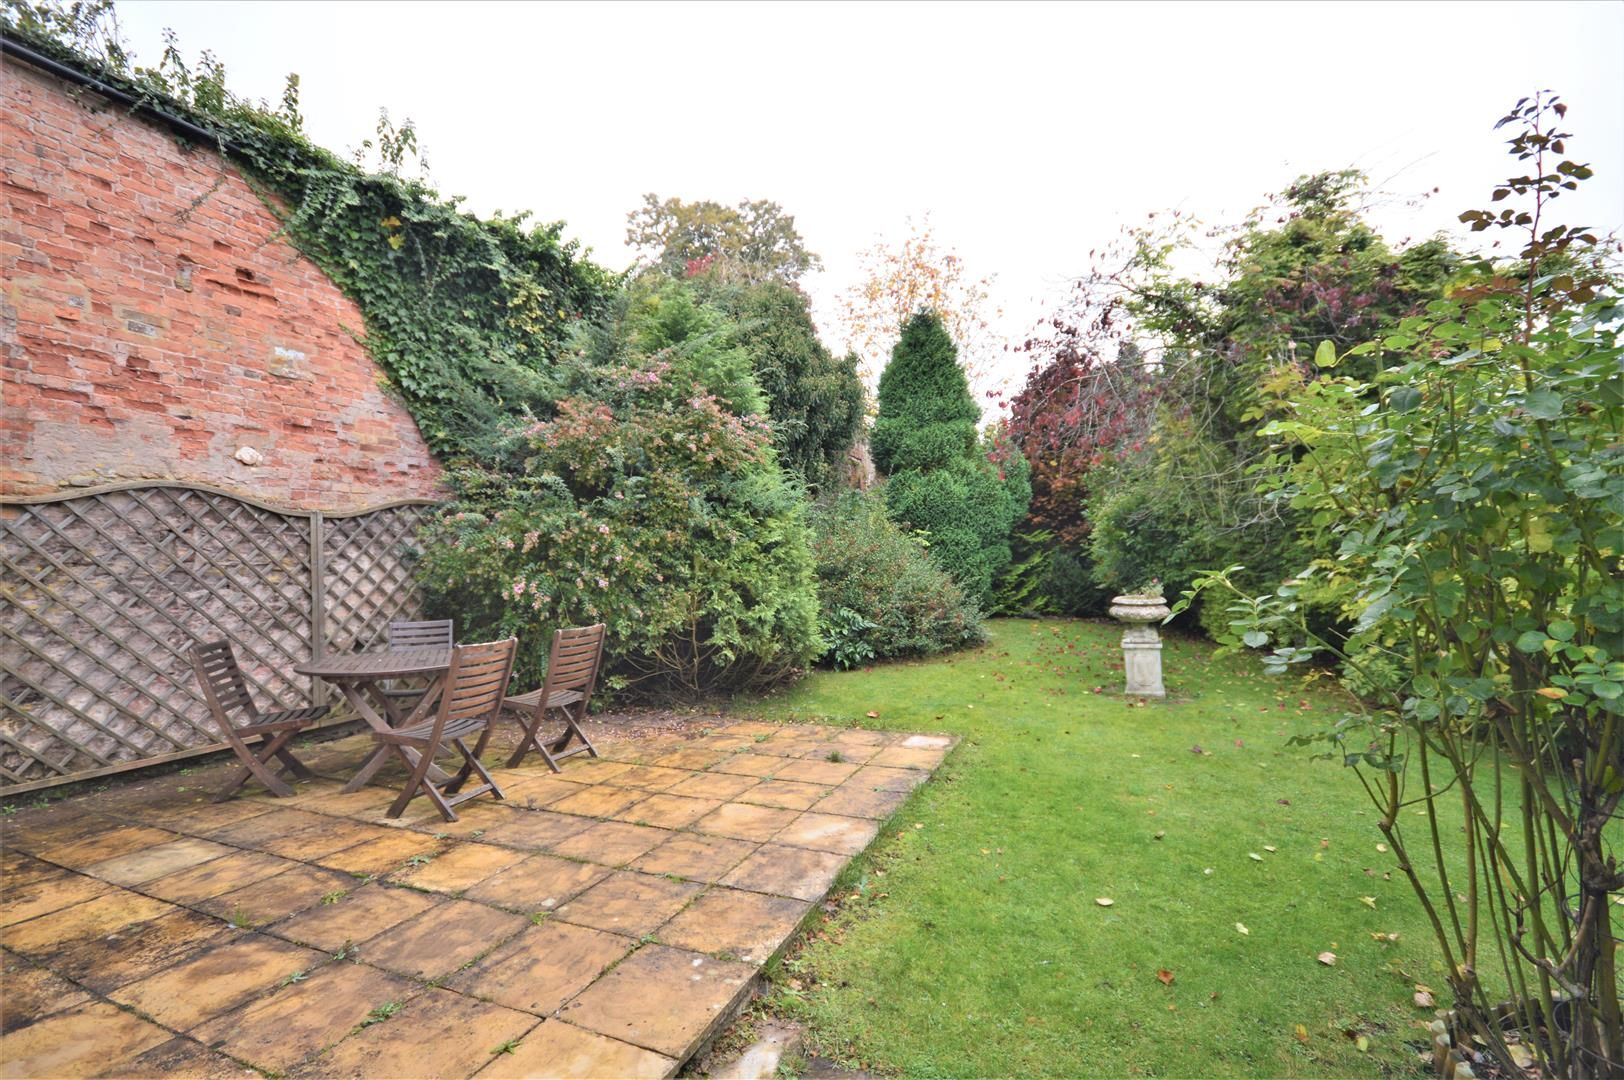 4 bed semi-detached for sale in Nr Madley 5